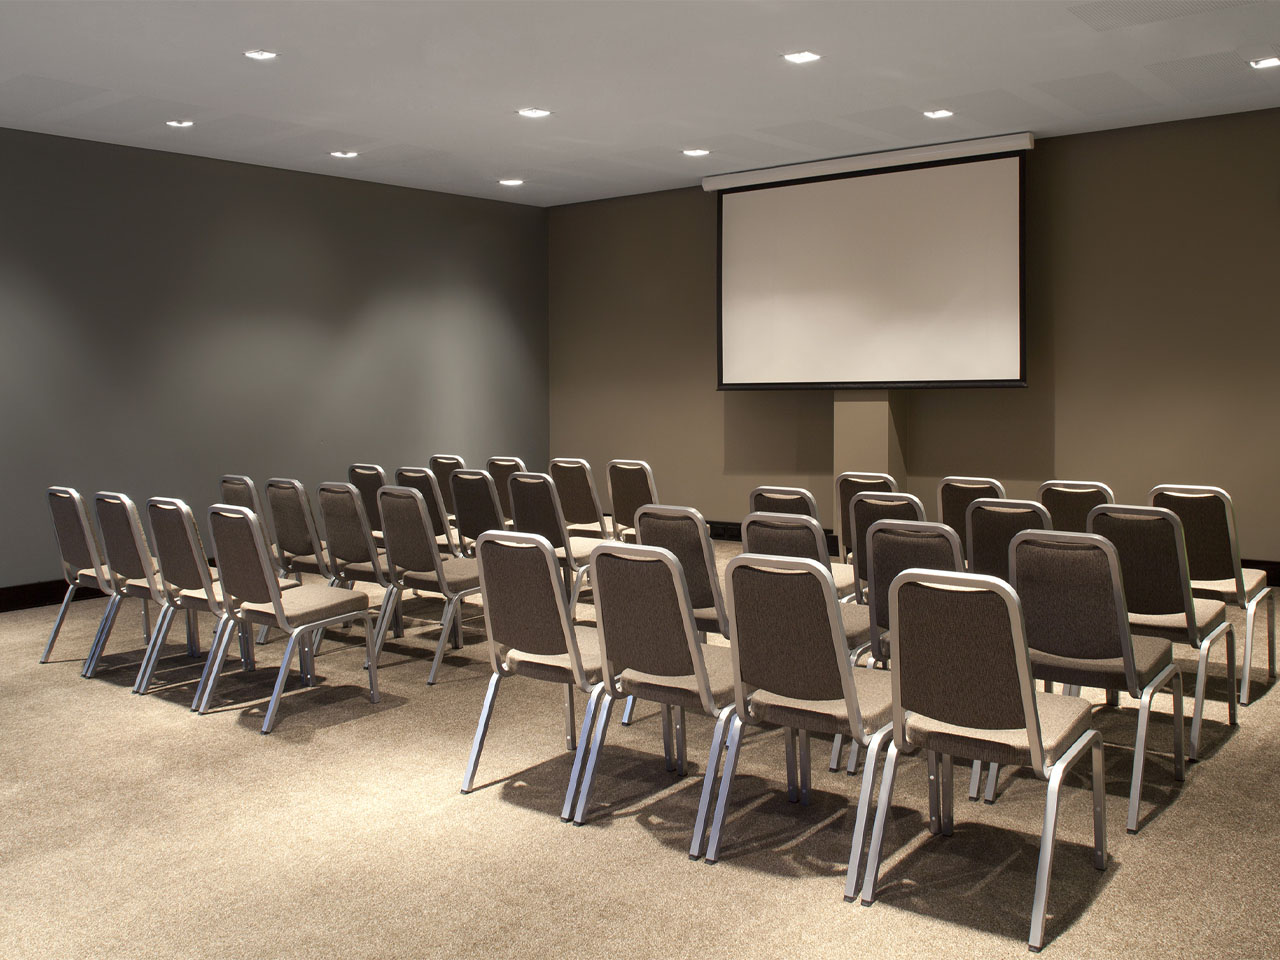 Empty conference room set up with chairs and projector screen